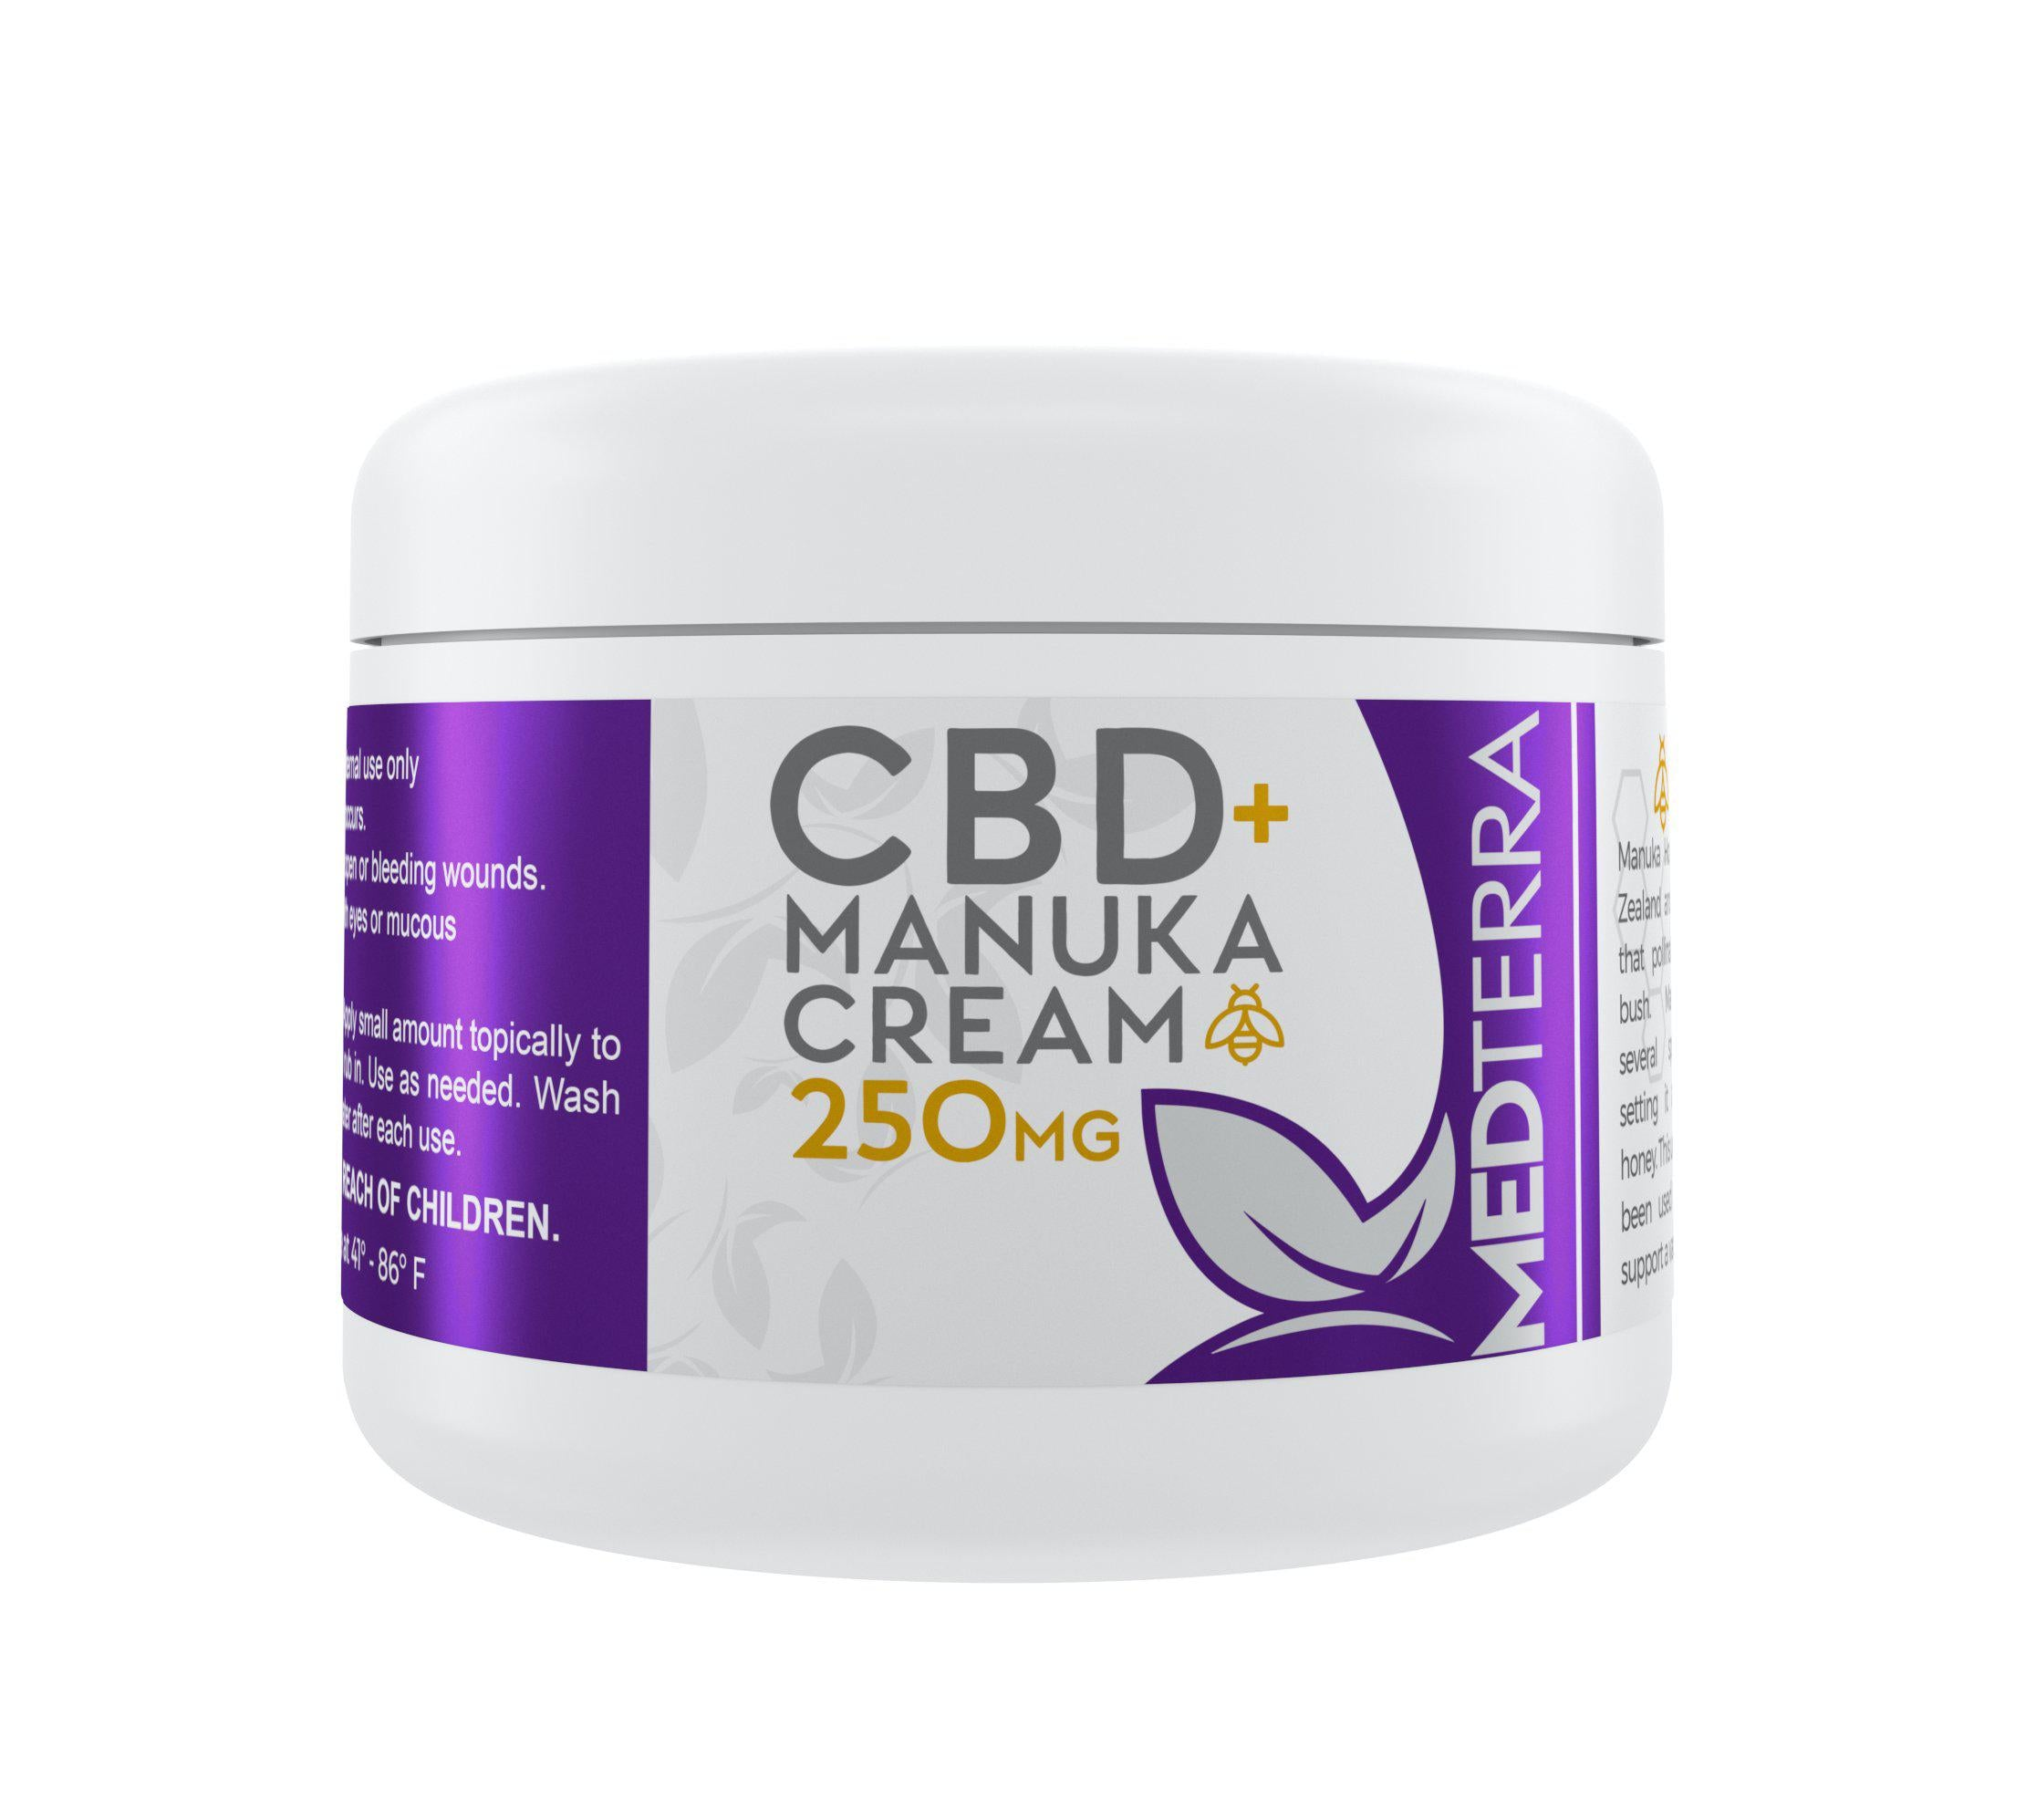 Medterra - CBD + Manuka Cream 250mg - 60ml